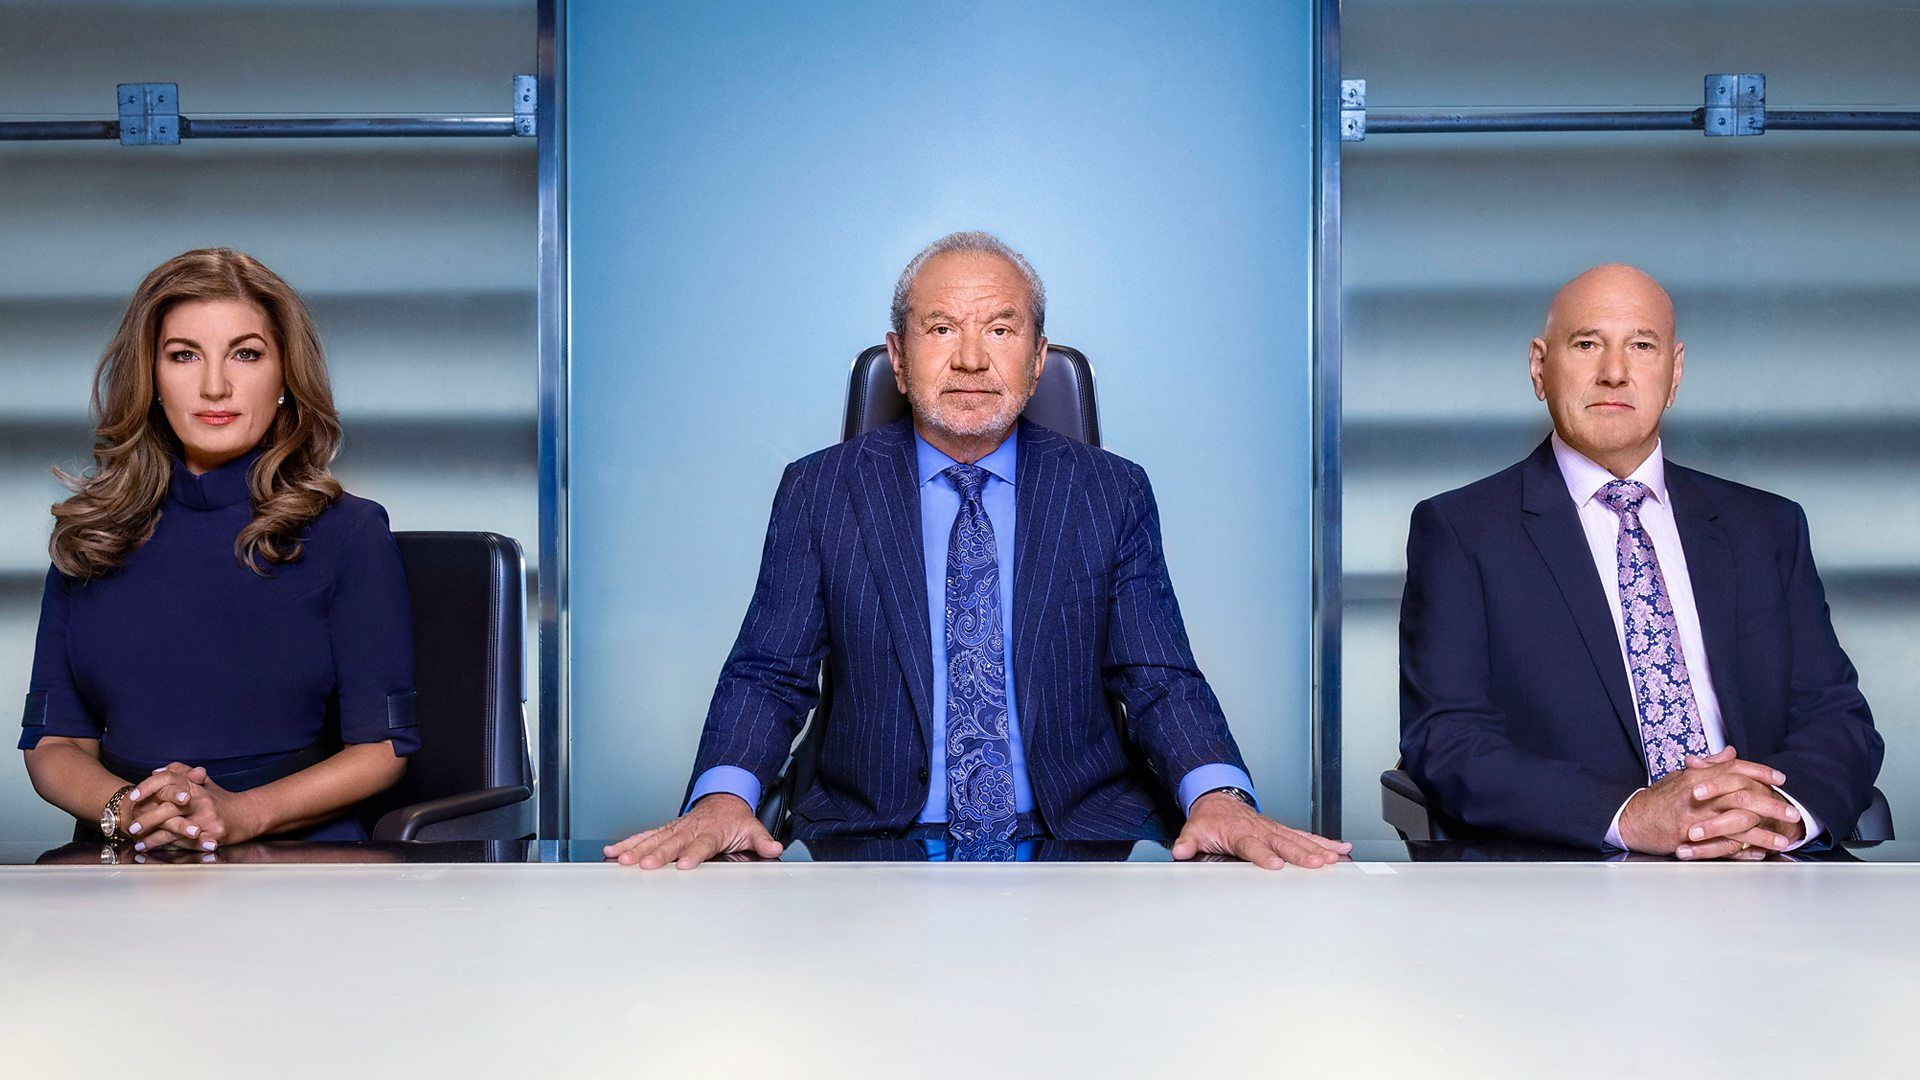 The Apprentice (UK) - S15E14